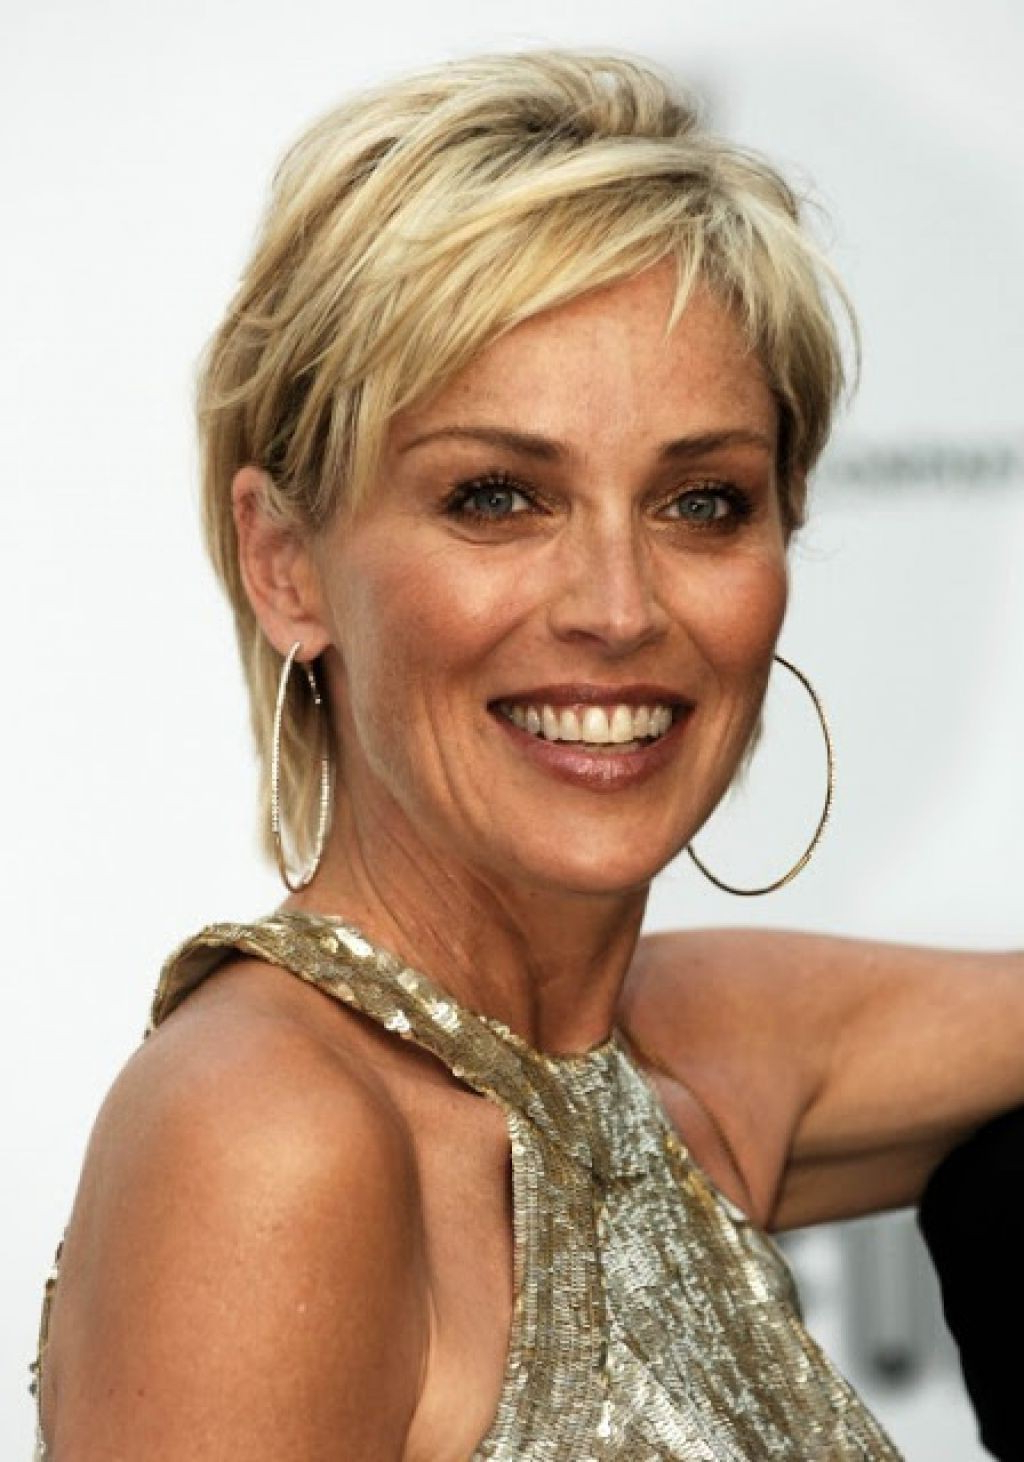 Image Result For Medium Short Haircuts 2016   Hair Styles With Regard To Stylish Short Haircuts For Women Over  (View 22 of 25)